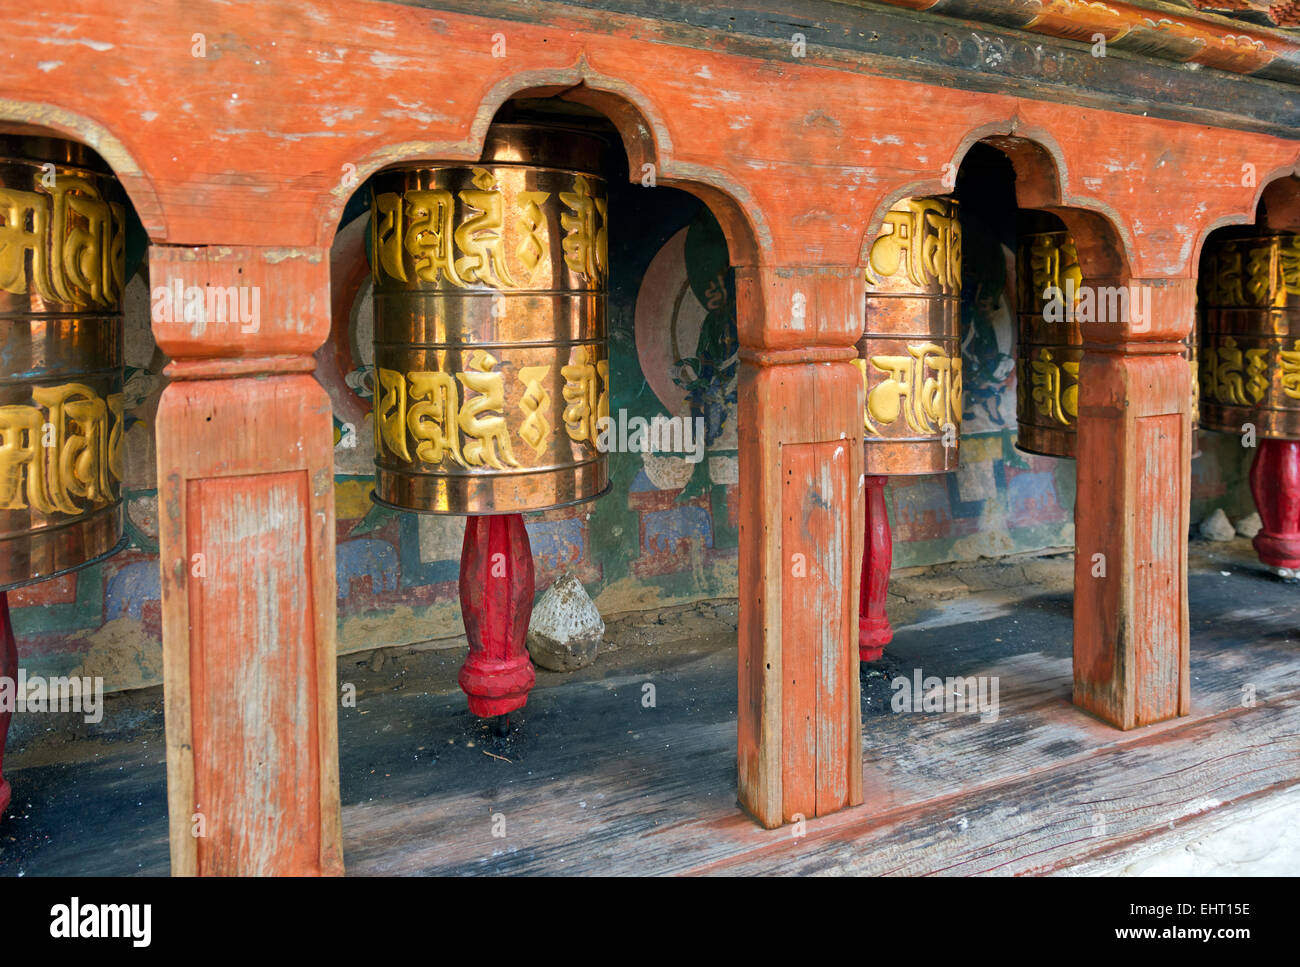 BU00367-00...BHUTAN - Prayer wheels at Kyichu Lhakhang near Paro, one of the oldest Temples in Bhutan. Stock Photo